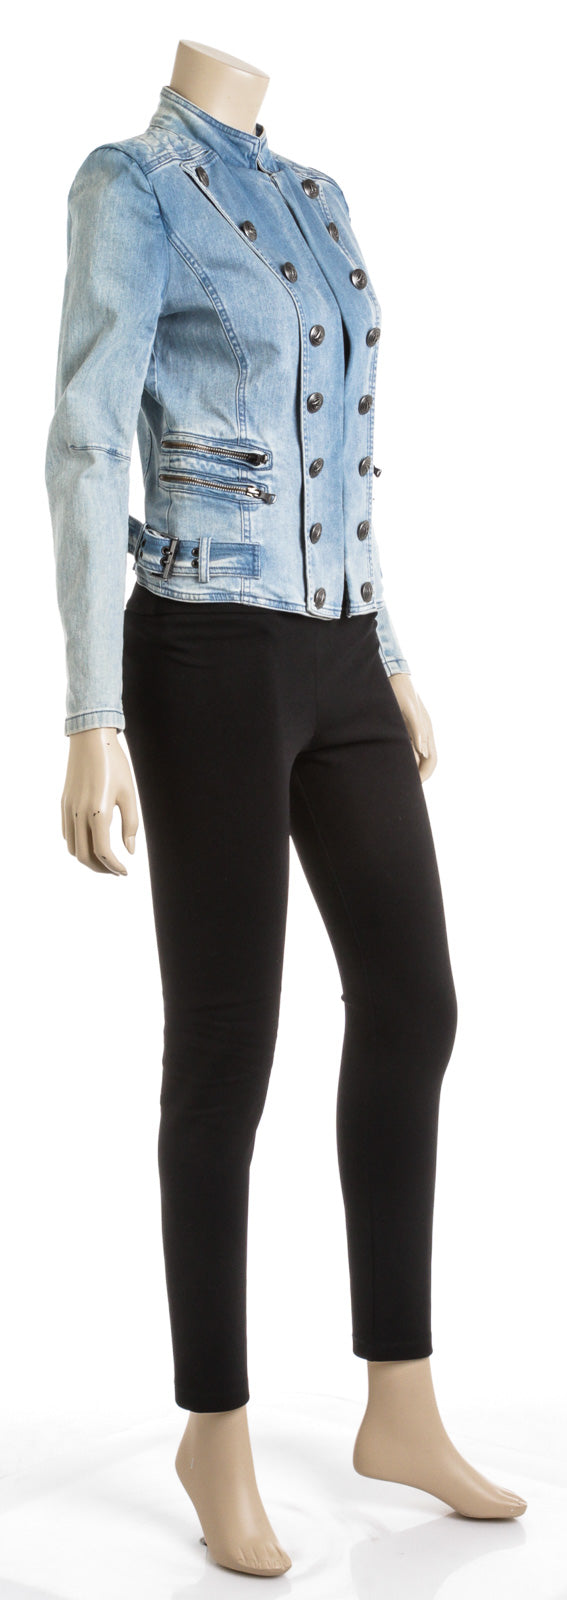 Pierre Balmain Denim Long Sleeve Jacket (Size 36)